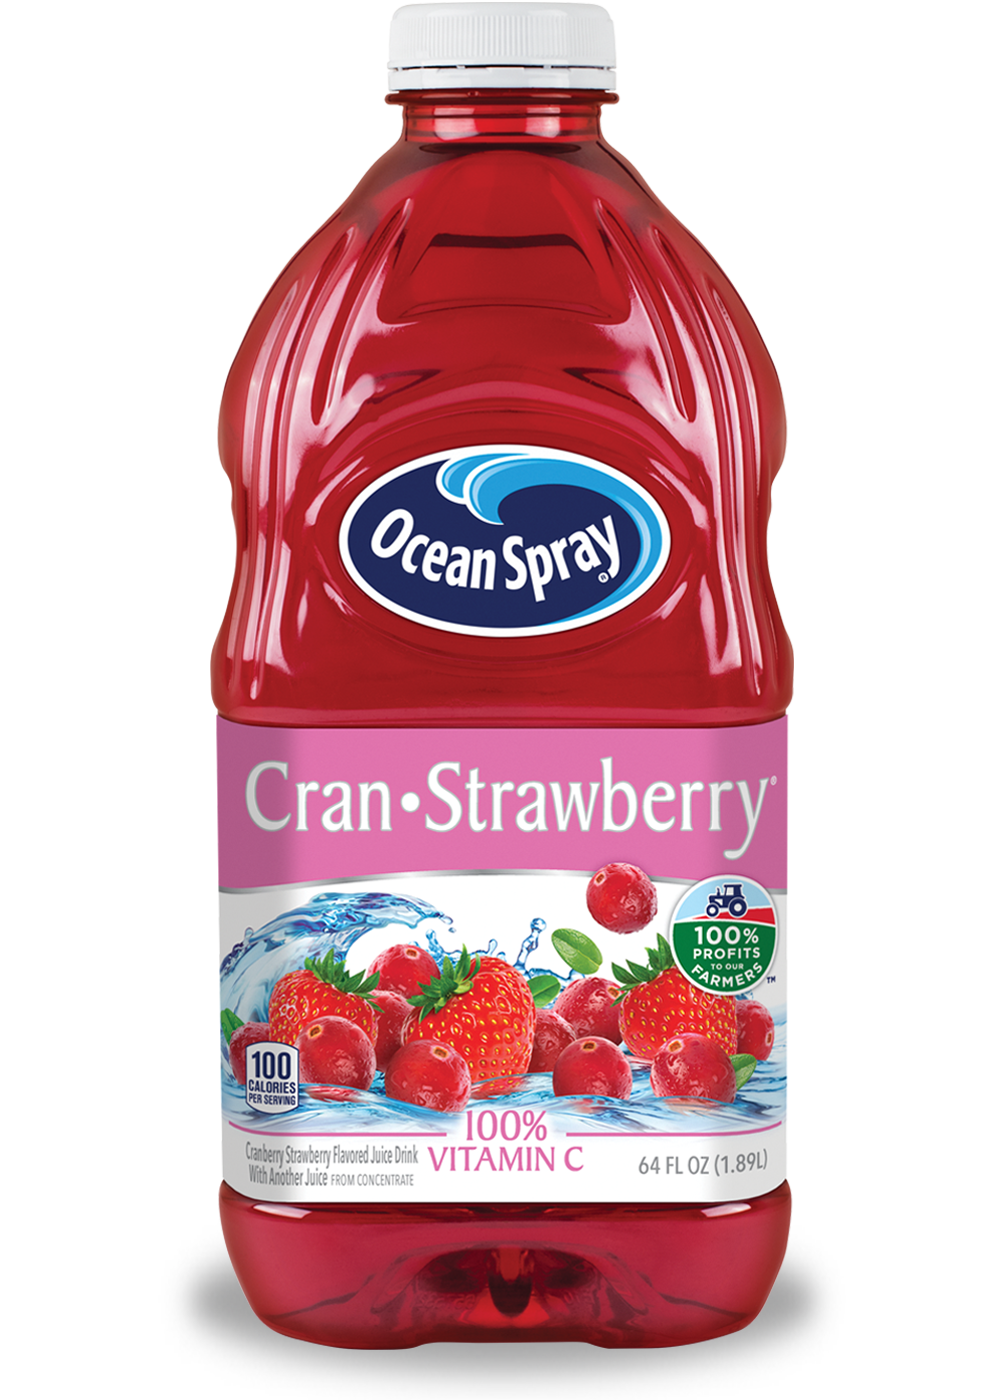 Cran•Strawberry® Cranberry Strawberry Juice Drink